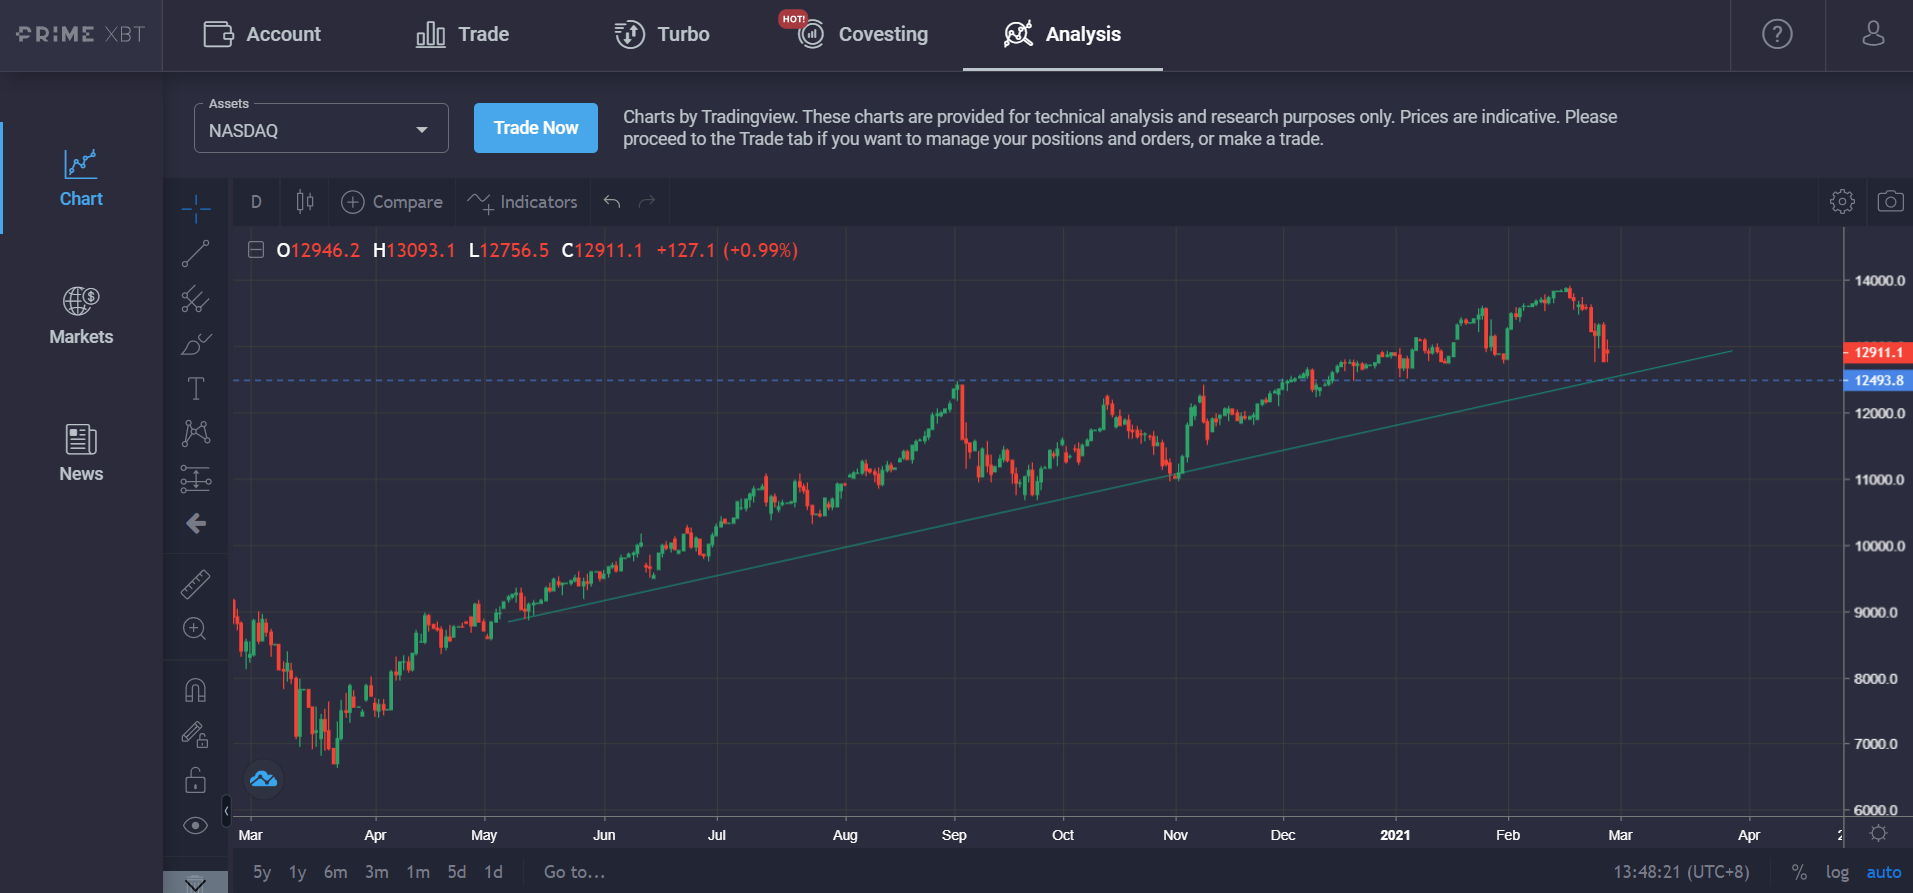 Market Research Report: Spike In Treasury Yields Sent Stocks, Crypto and Commodities Reeling, USD Rallying - Nasdaq chart